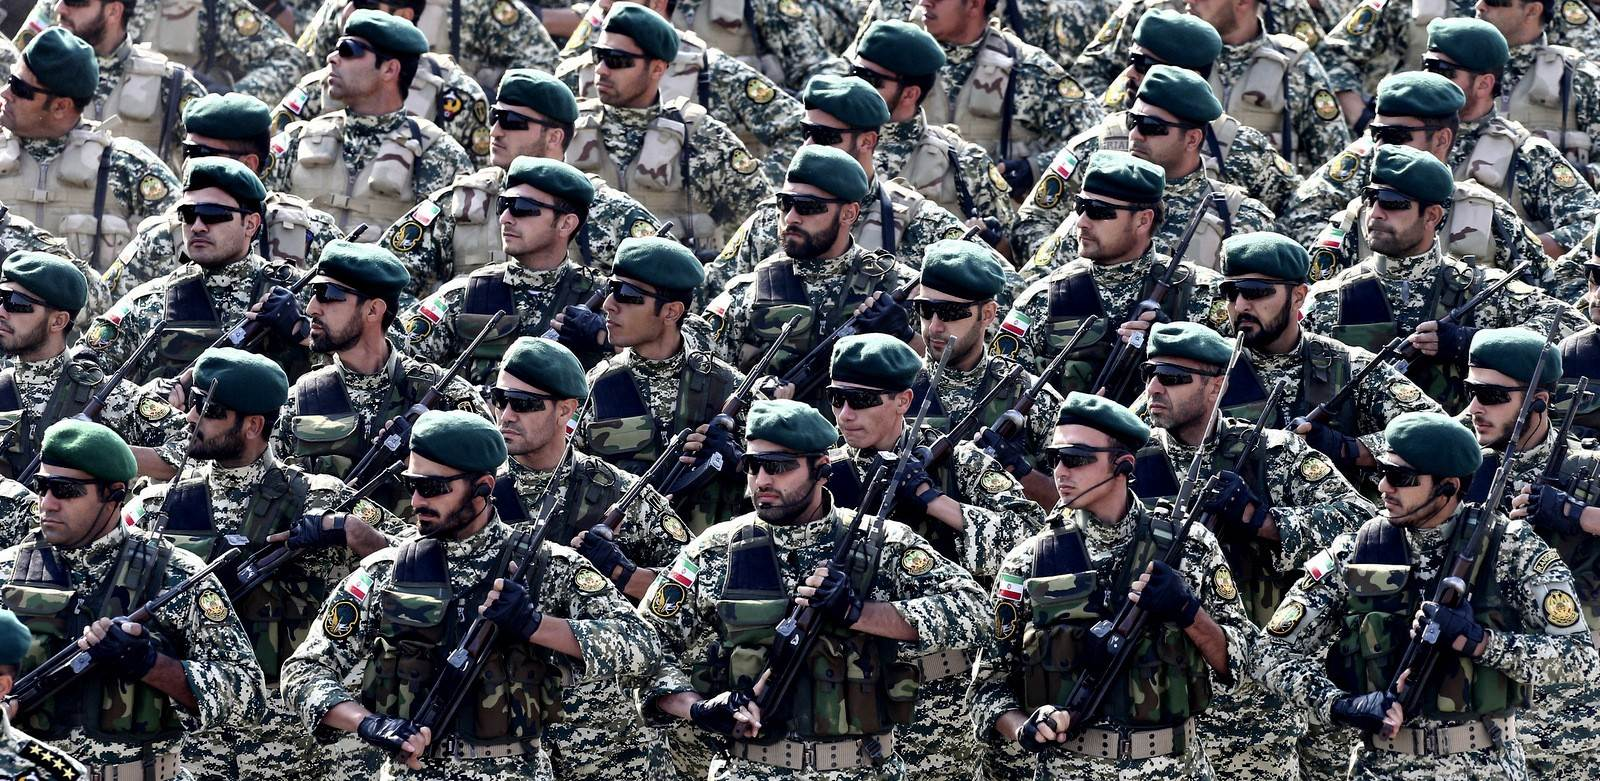 Iran's supreme leader called on the Army to assume full readiness